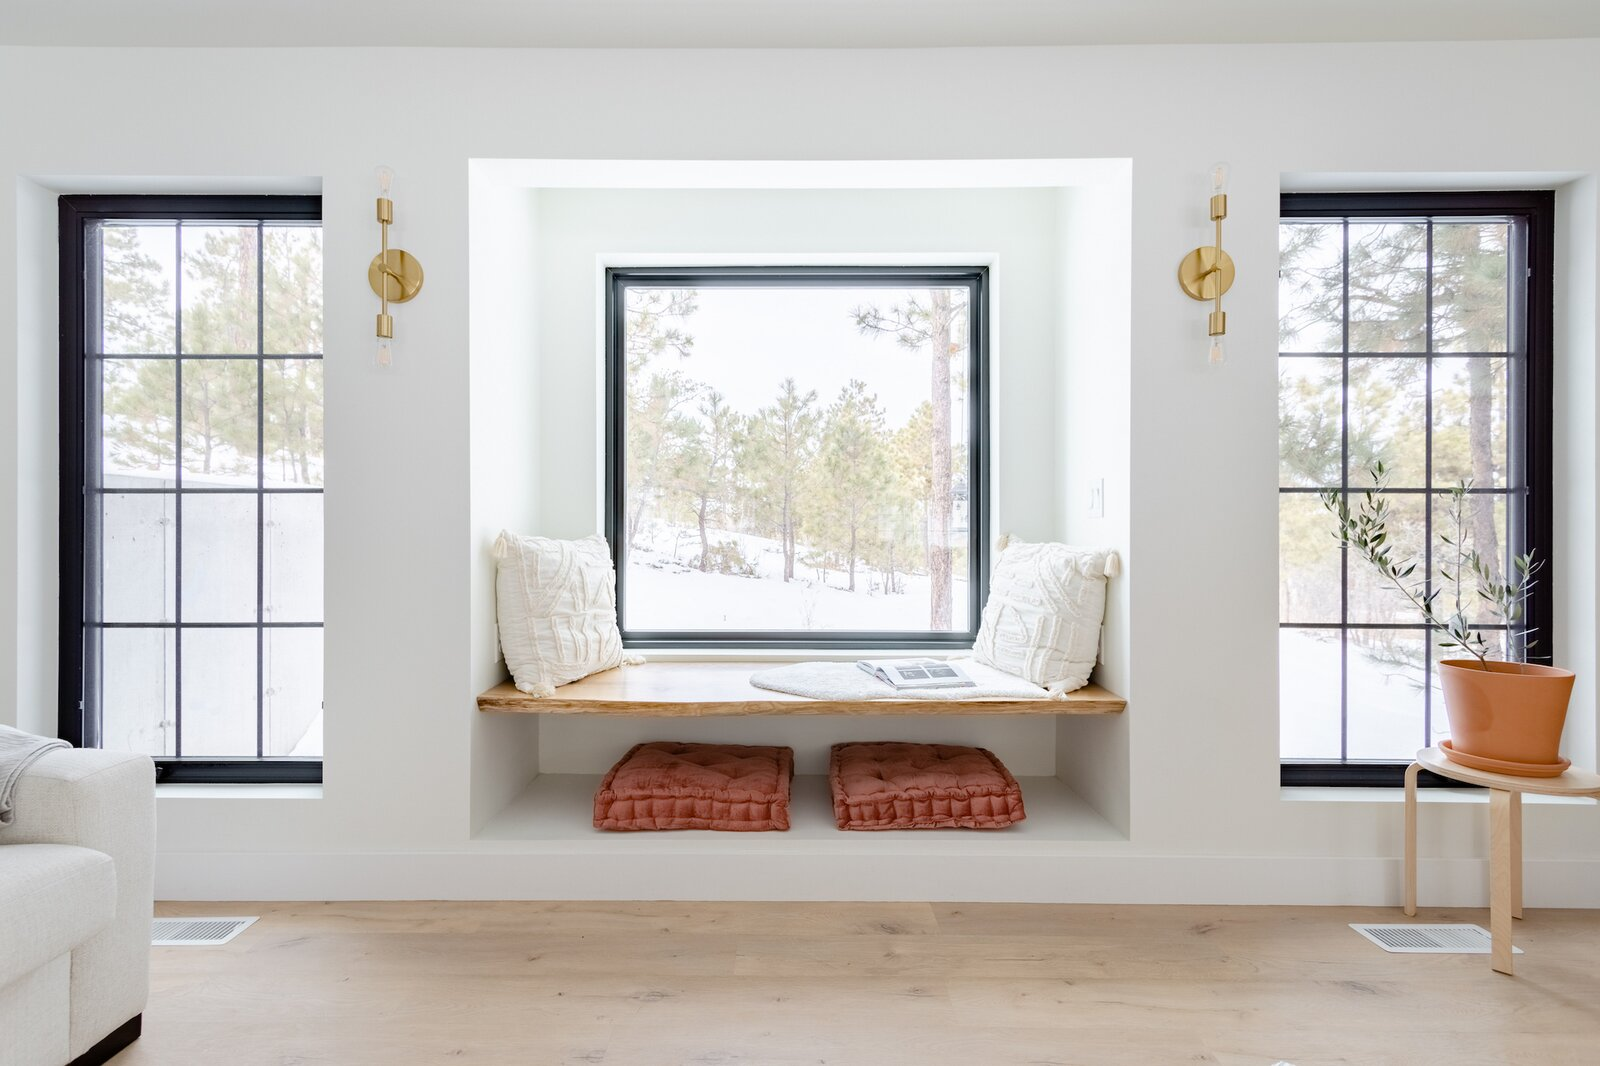 Window seat of The Lofthouse by Drew + Tarah MacAlmon.